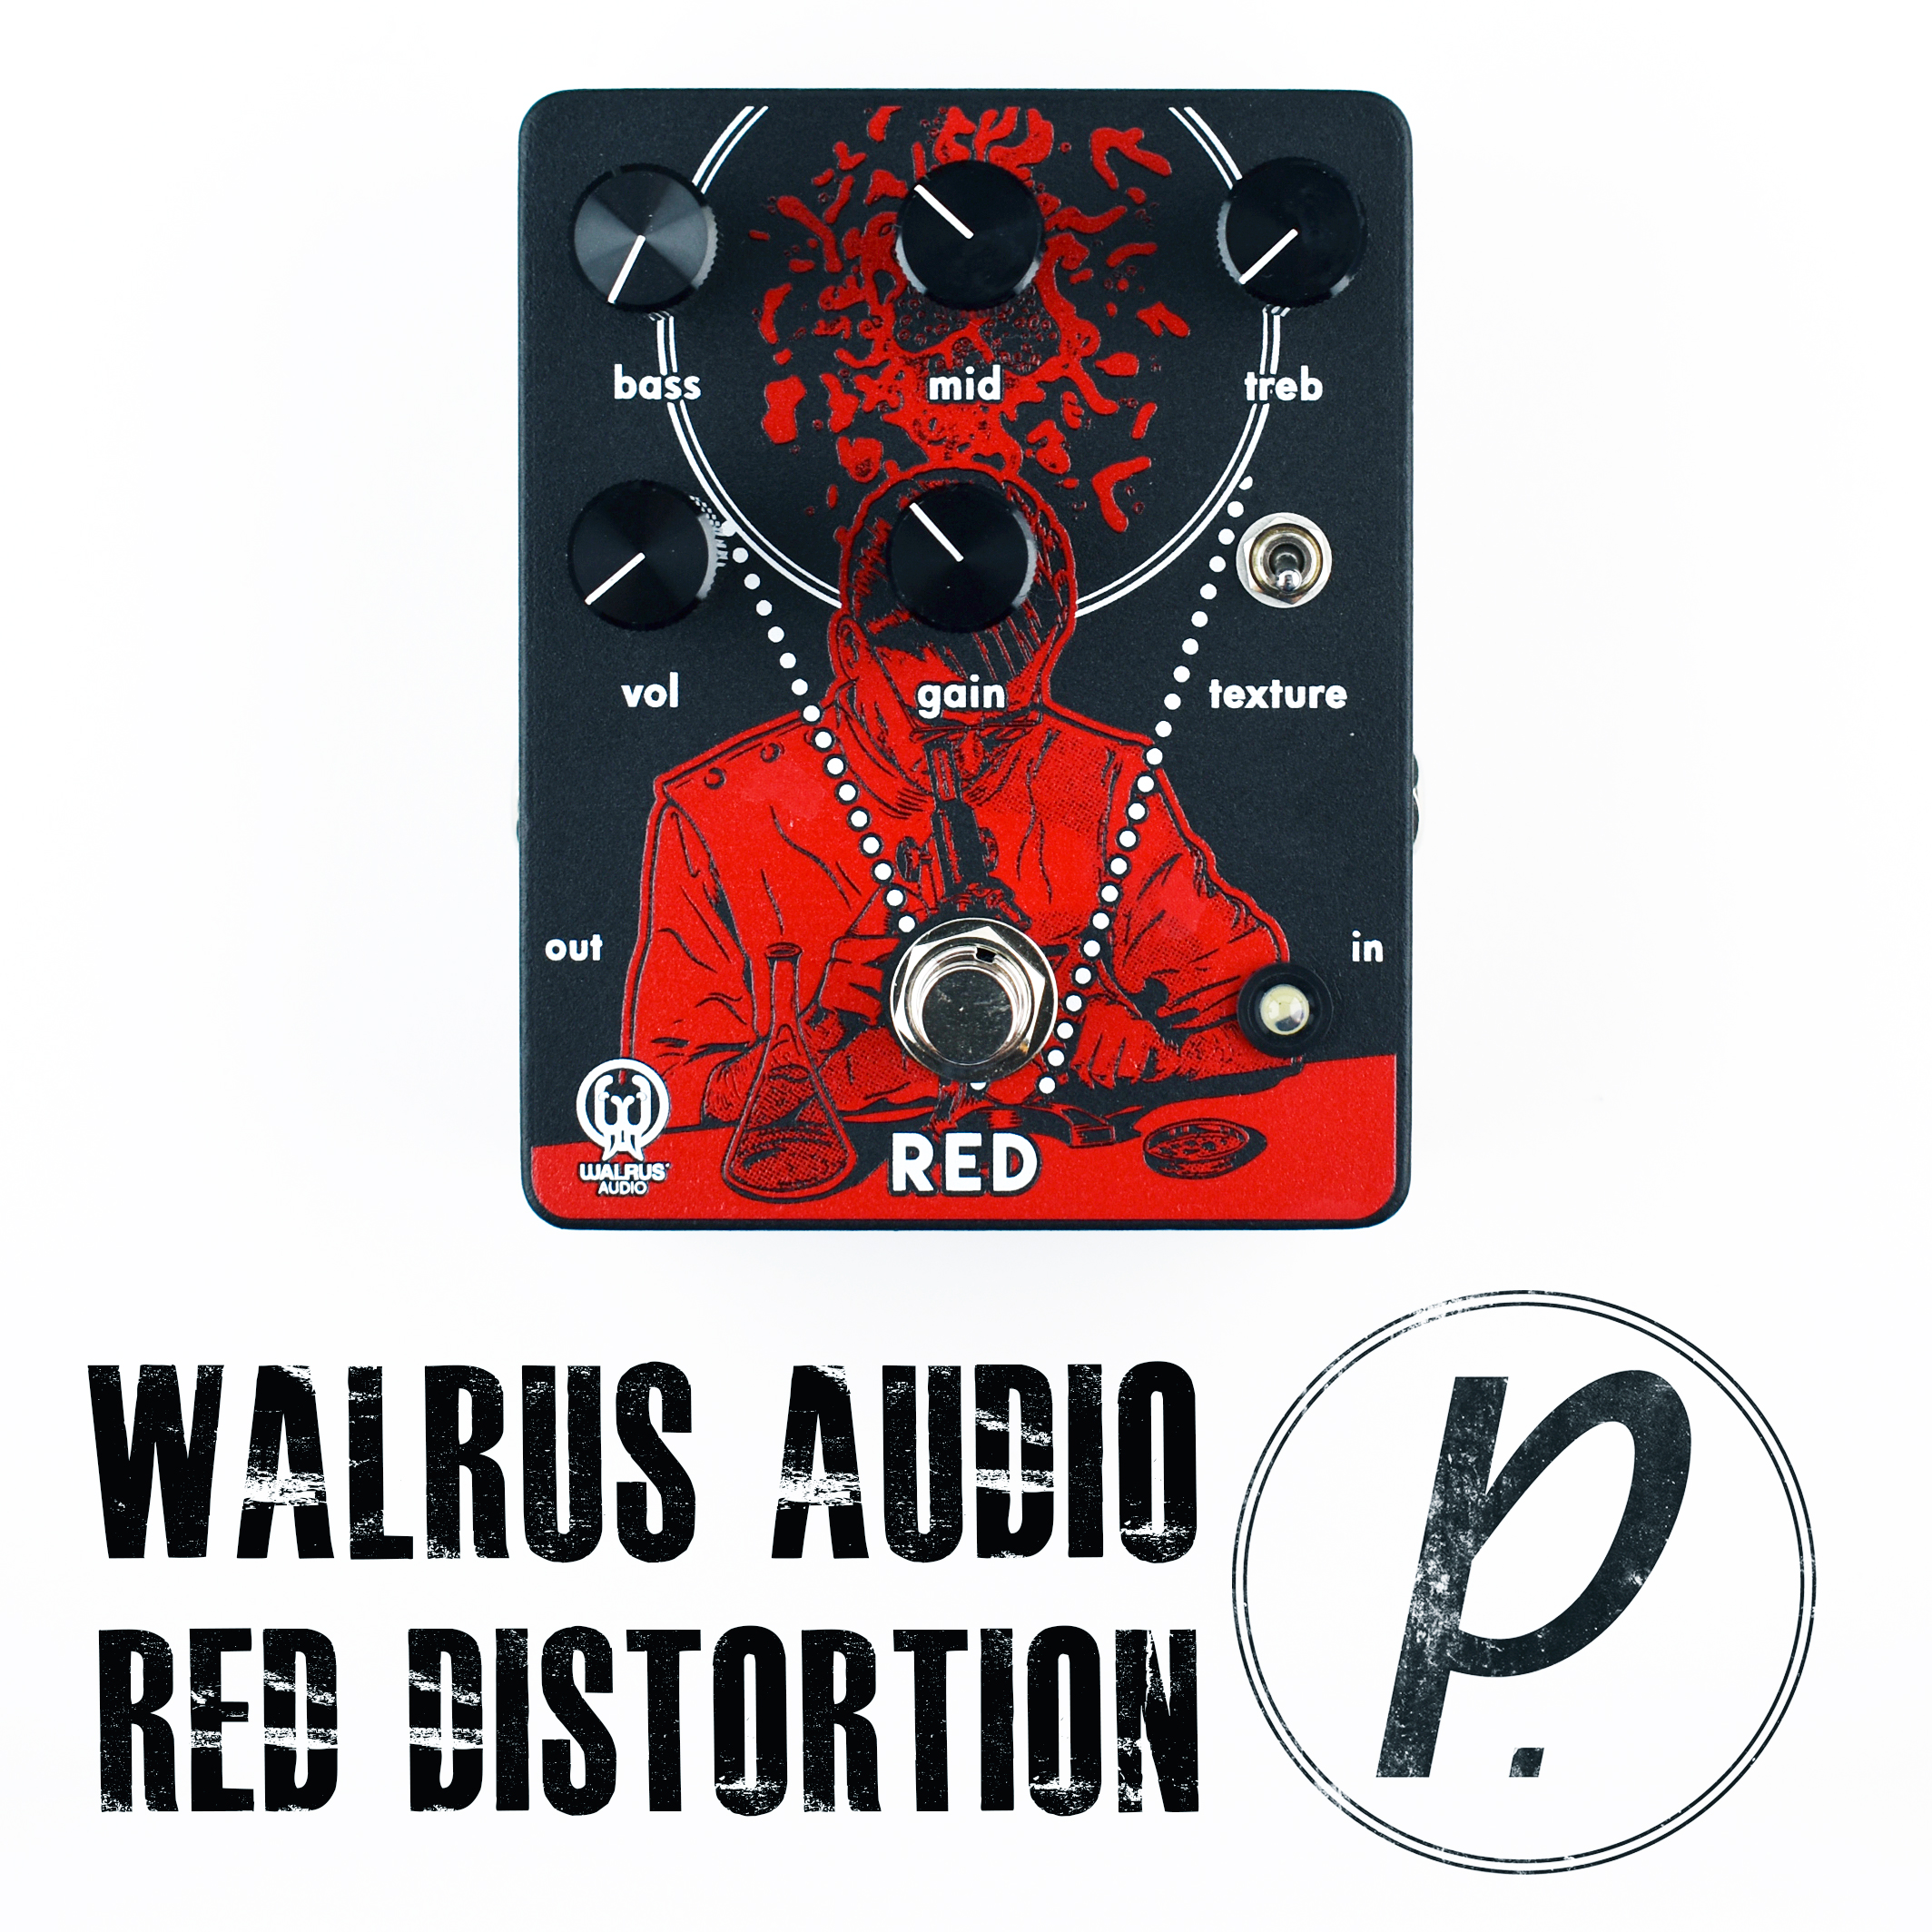 Walrus audio red